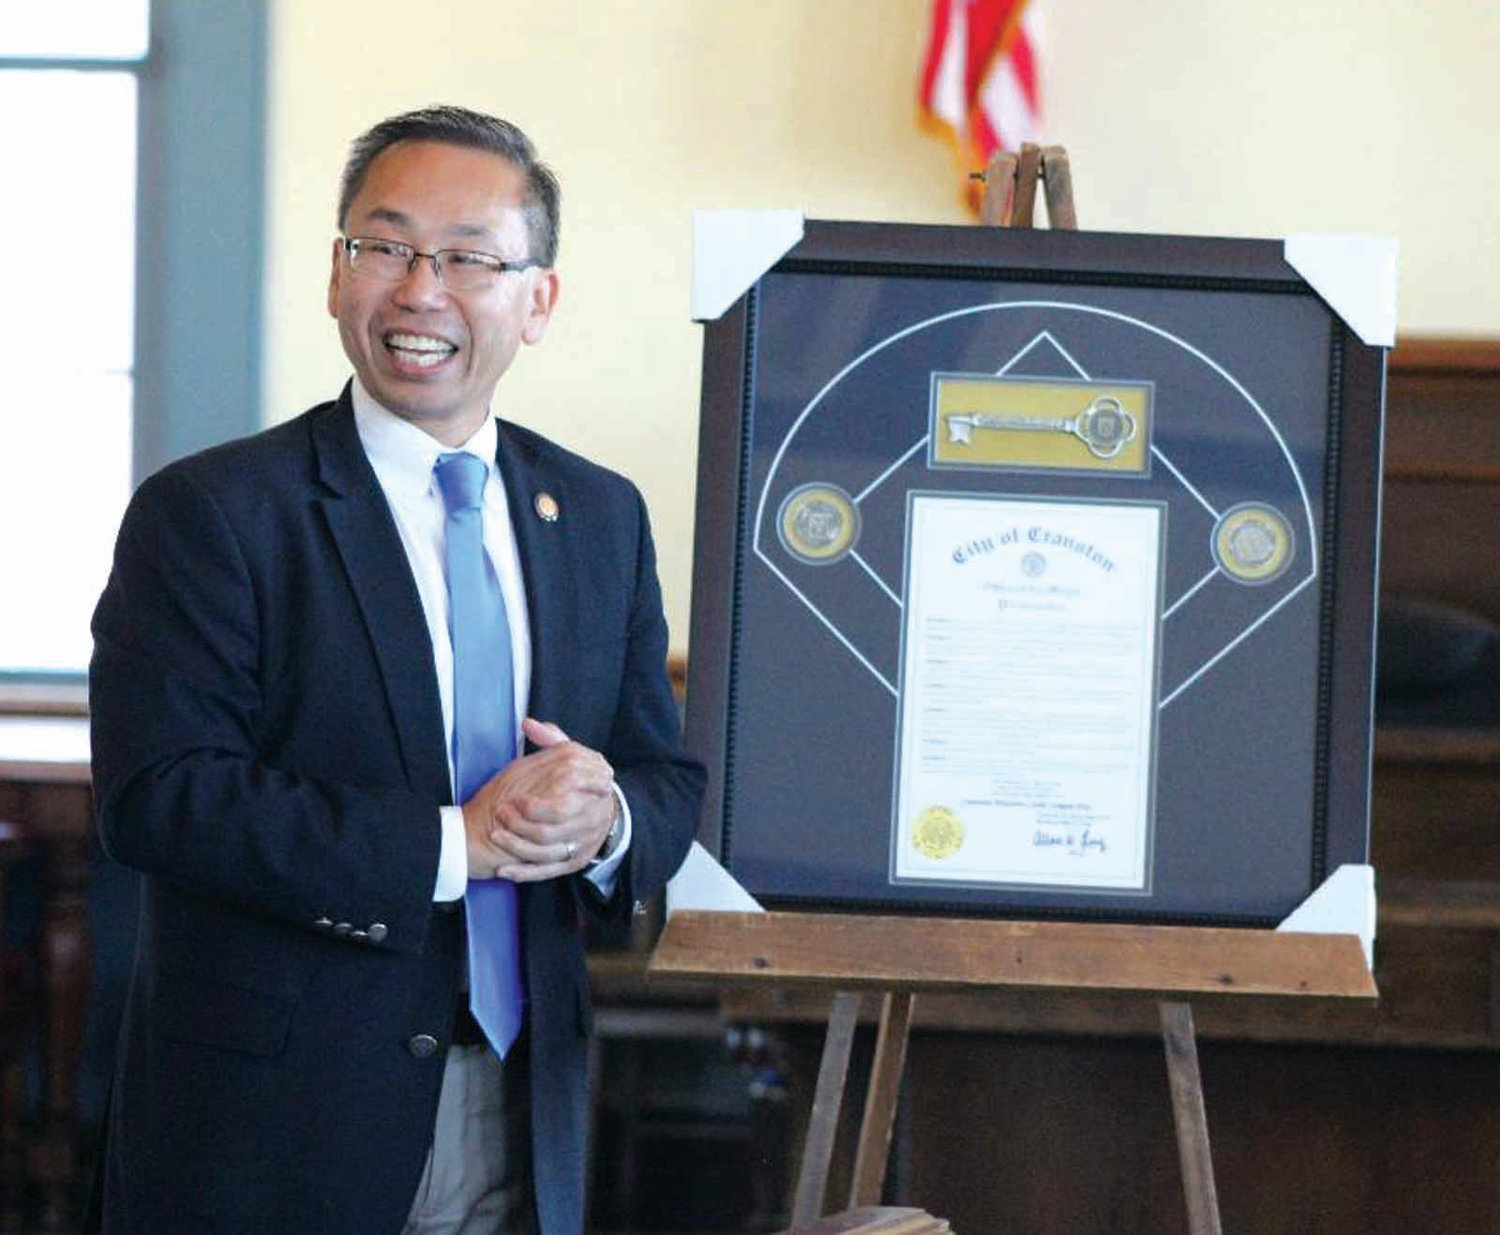 KEY TO THE CITY: Mayor Allan Fung presents CWLL with the key to the city last week at city hall.